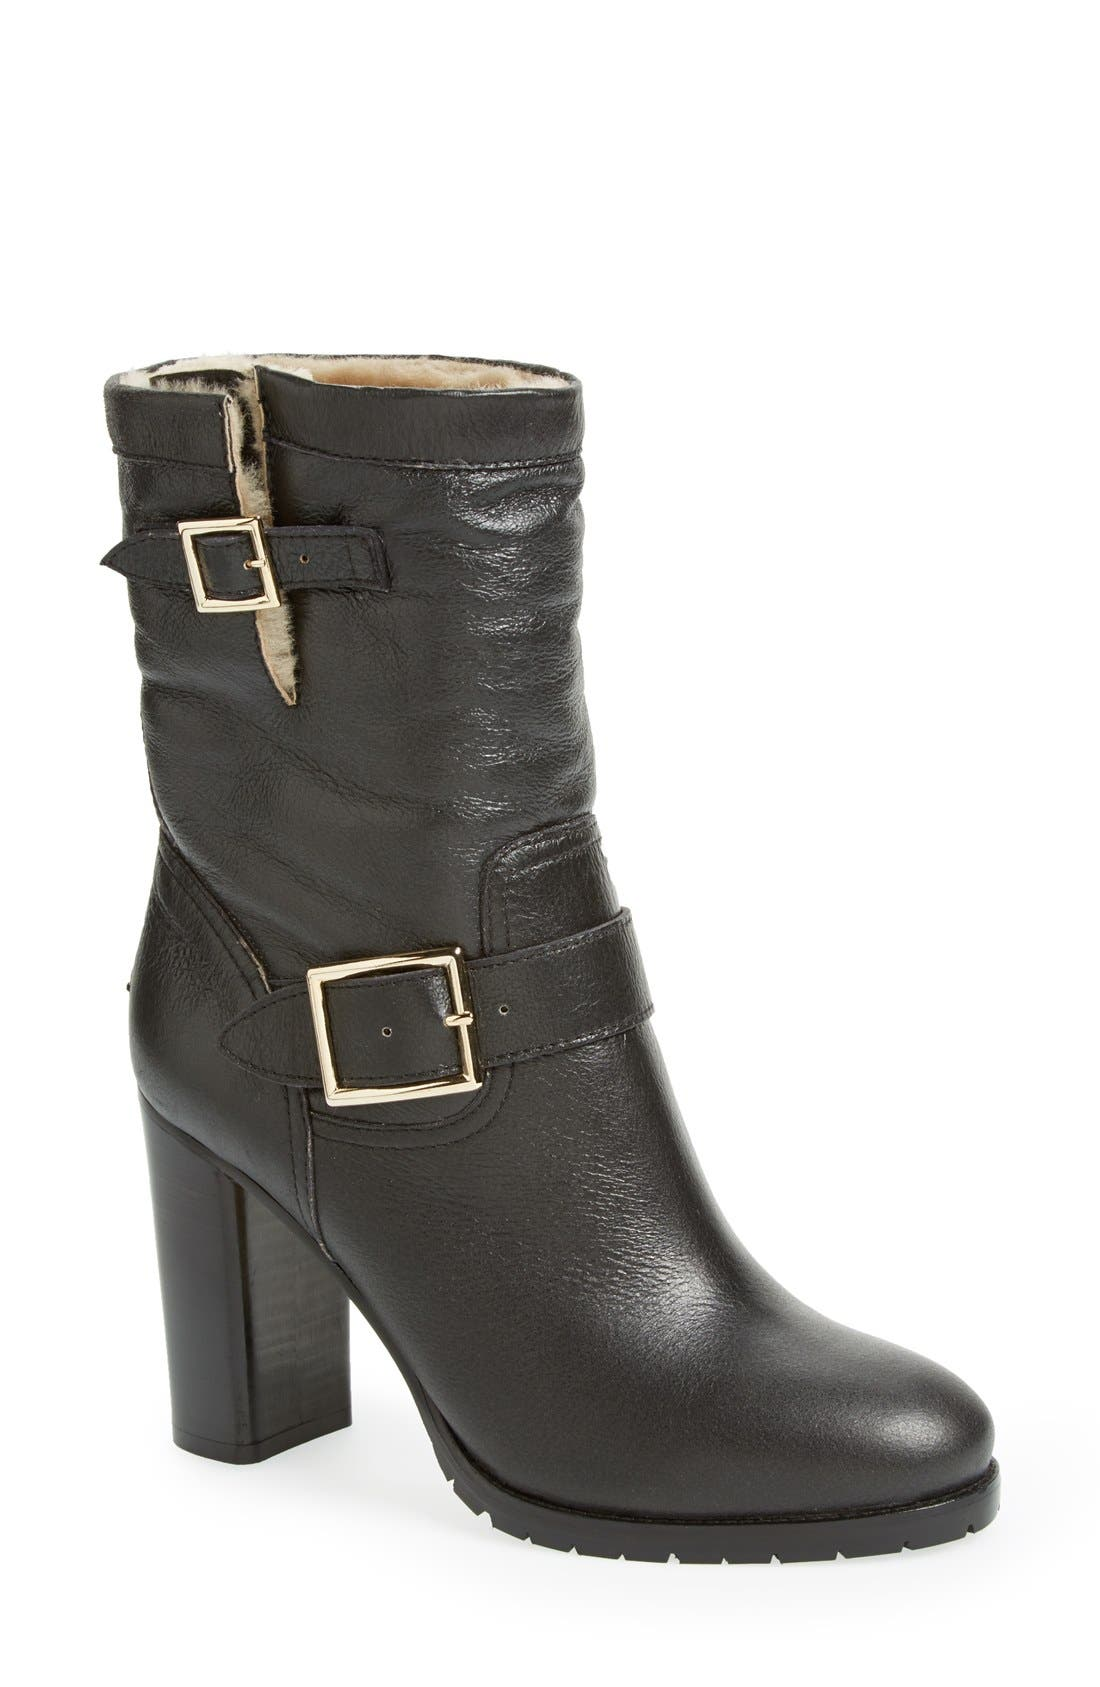 Main Image - Jimmy Choo 'Dart' Leather & Genuine Shearling Mid Calf Moto Boot (Women)